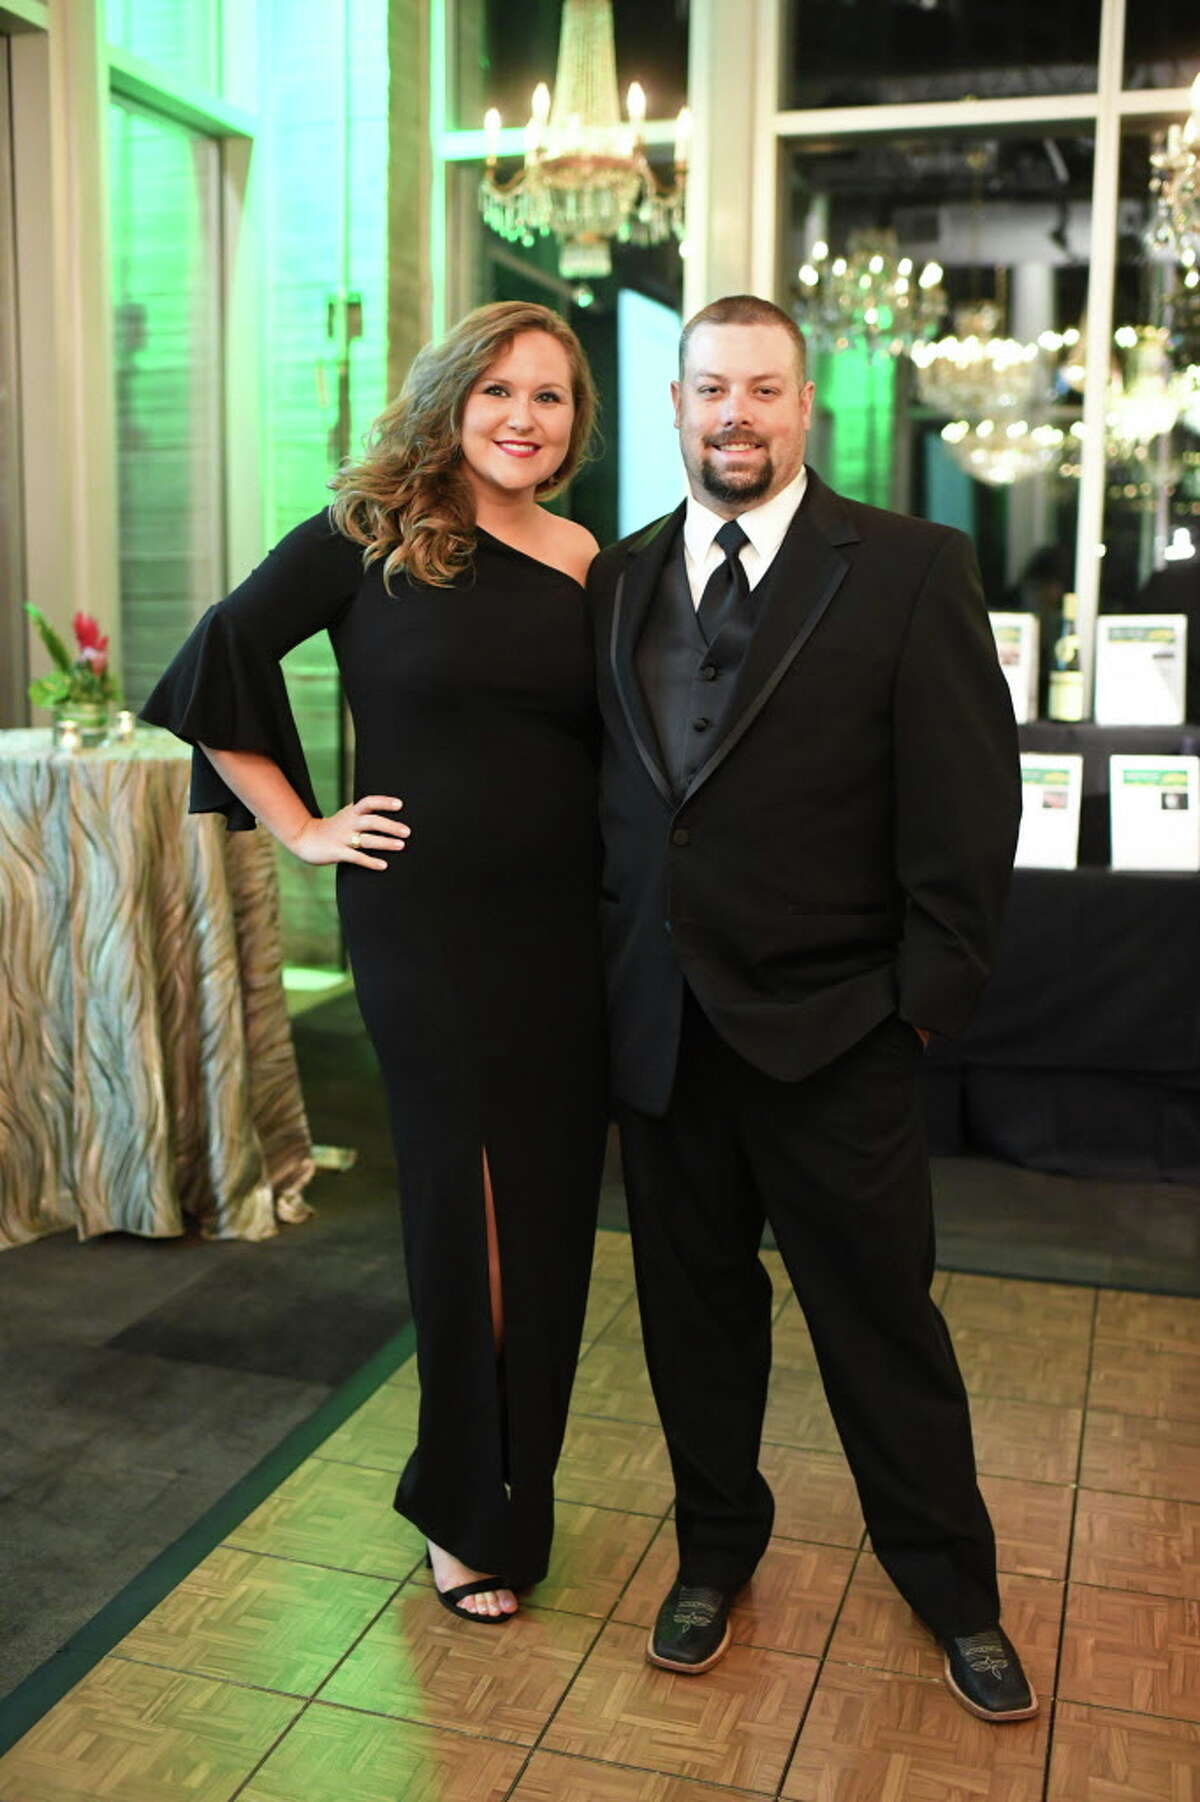 The Barbara Bush Houston Literacy FoundationÂ?'s Young Professionals Group hosted its 3rd annual black-tie Jungle Book-themed gala at The Dunlavy